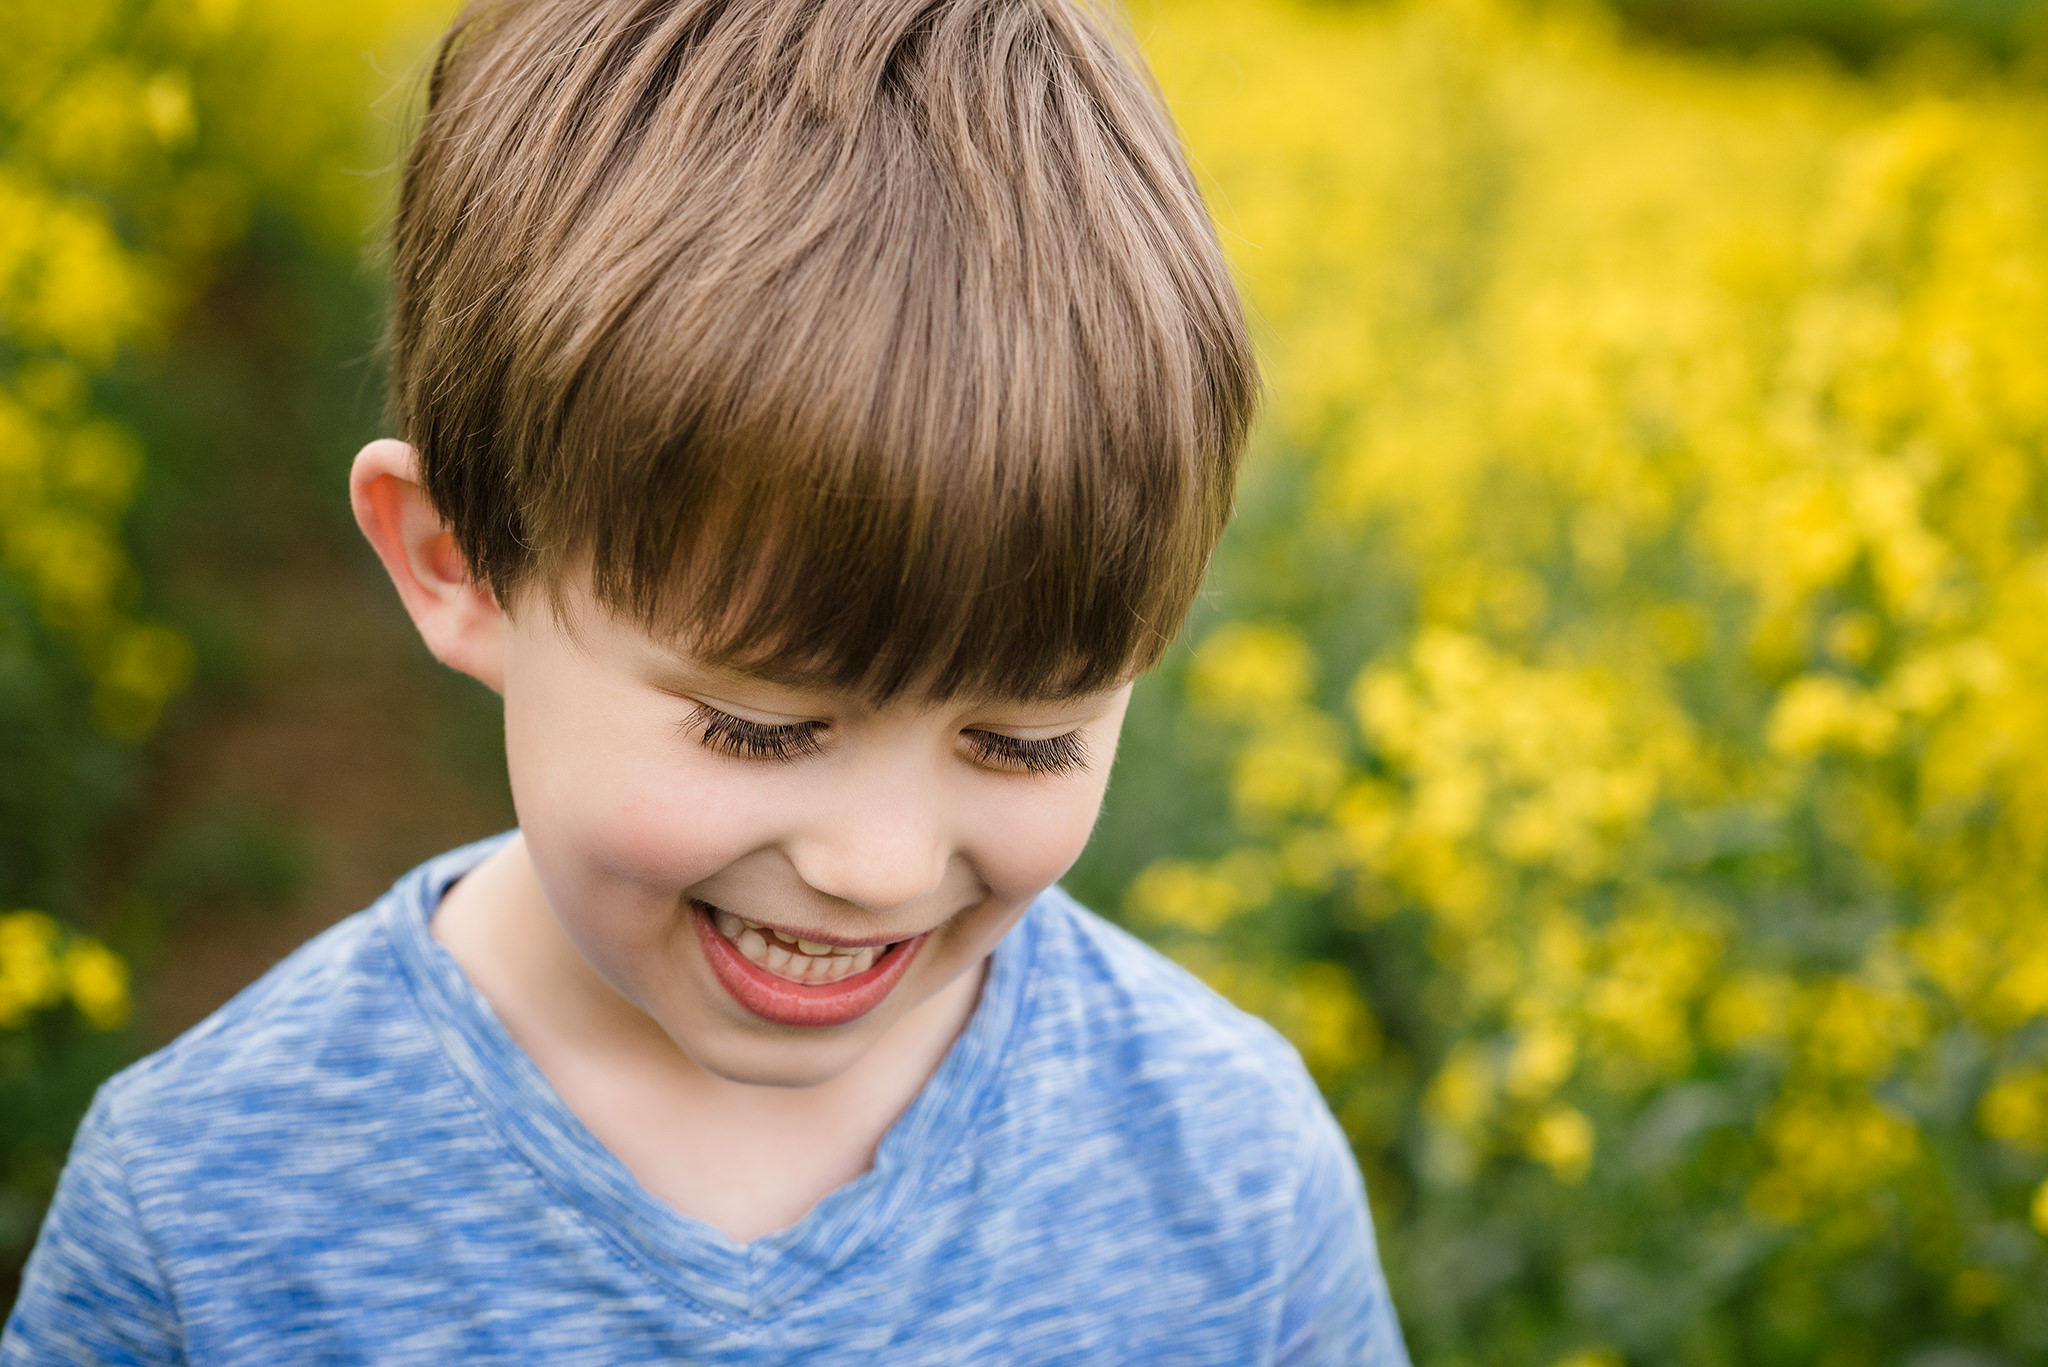 Close up of a little boy looking down smiling in a rapeseed field on a photography session in buckinghamshire